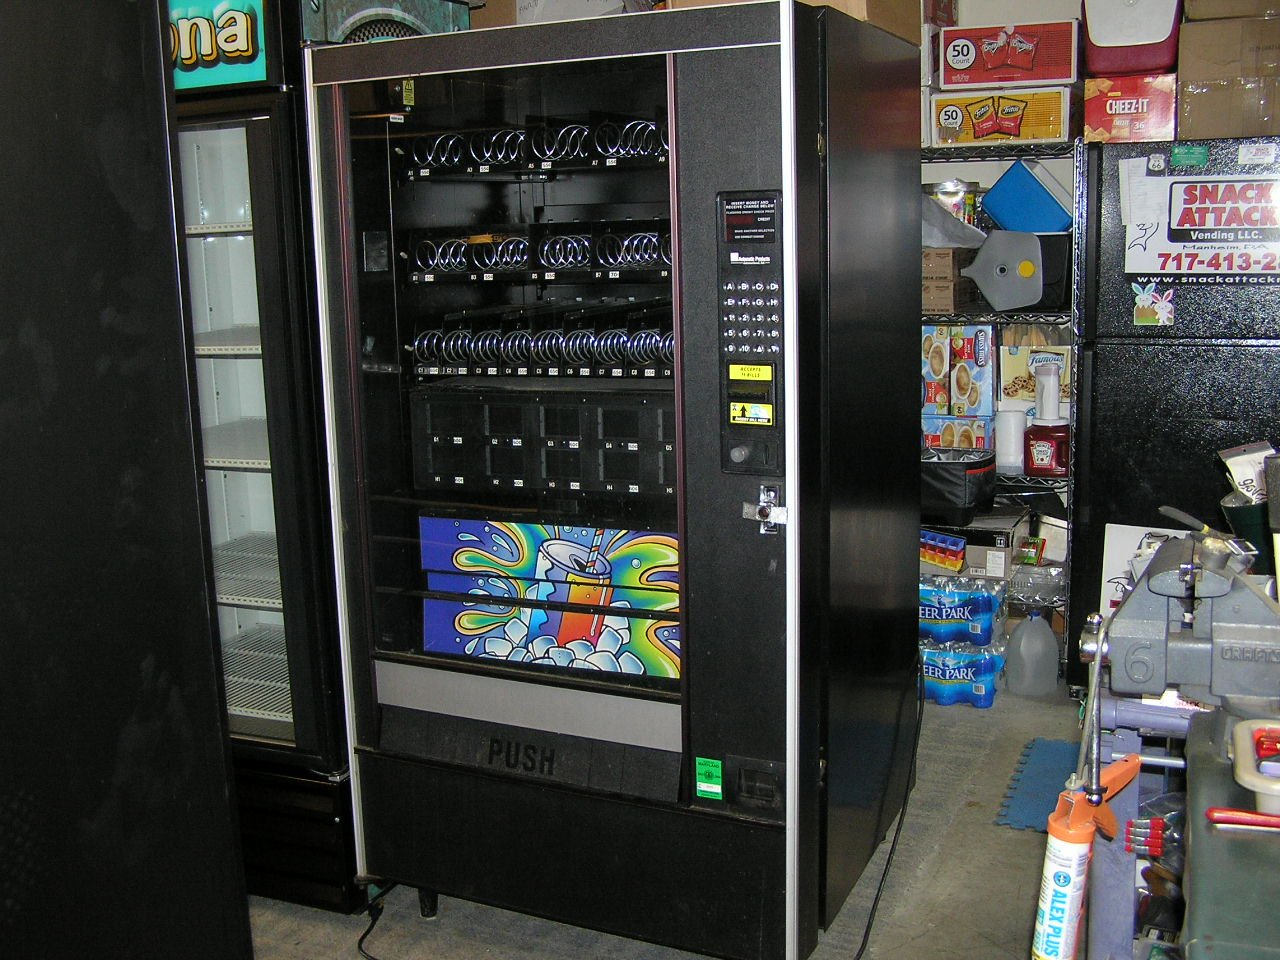 (AP) AUTOMATIC PRODUCTS 4600, 6600, 7600, 112, 113, LCM (2) SOUP SPIRALS 6'' Ct./! by Snack Attack Vending (Image #5)